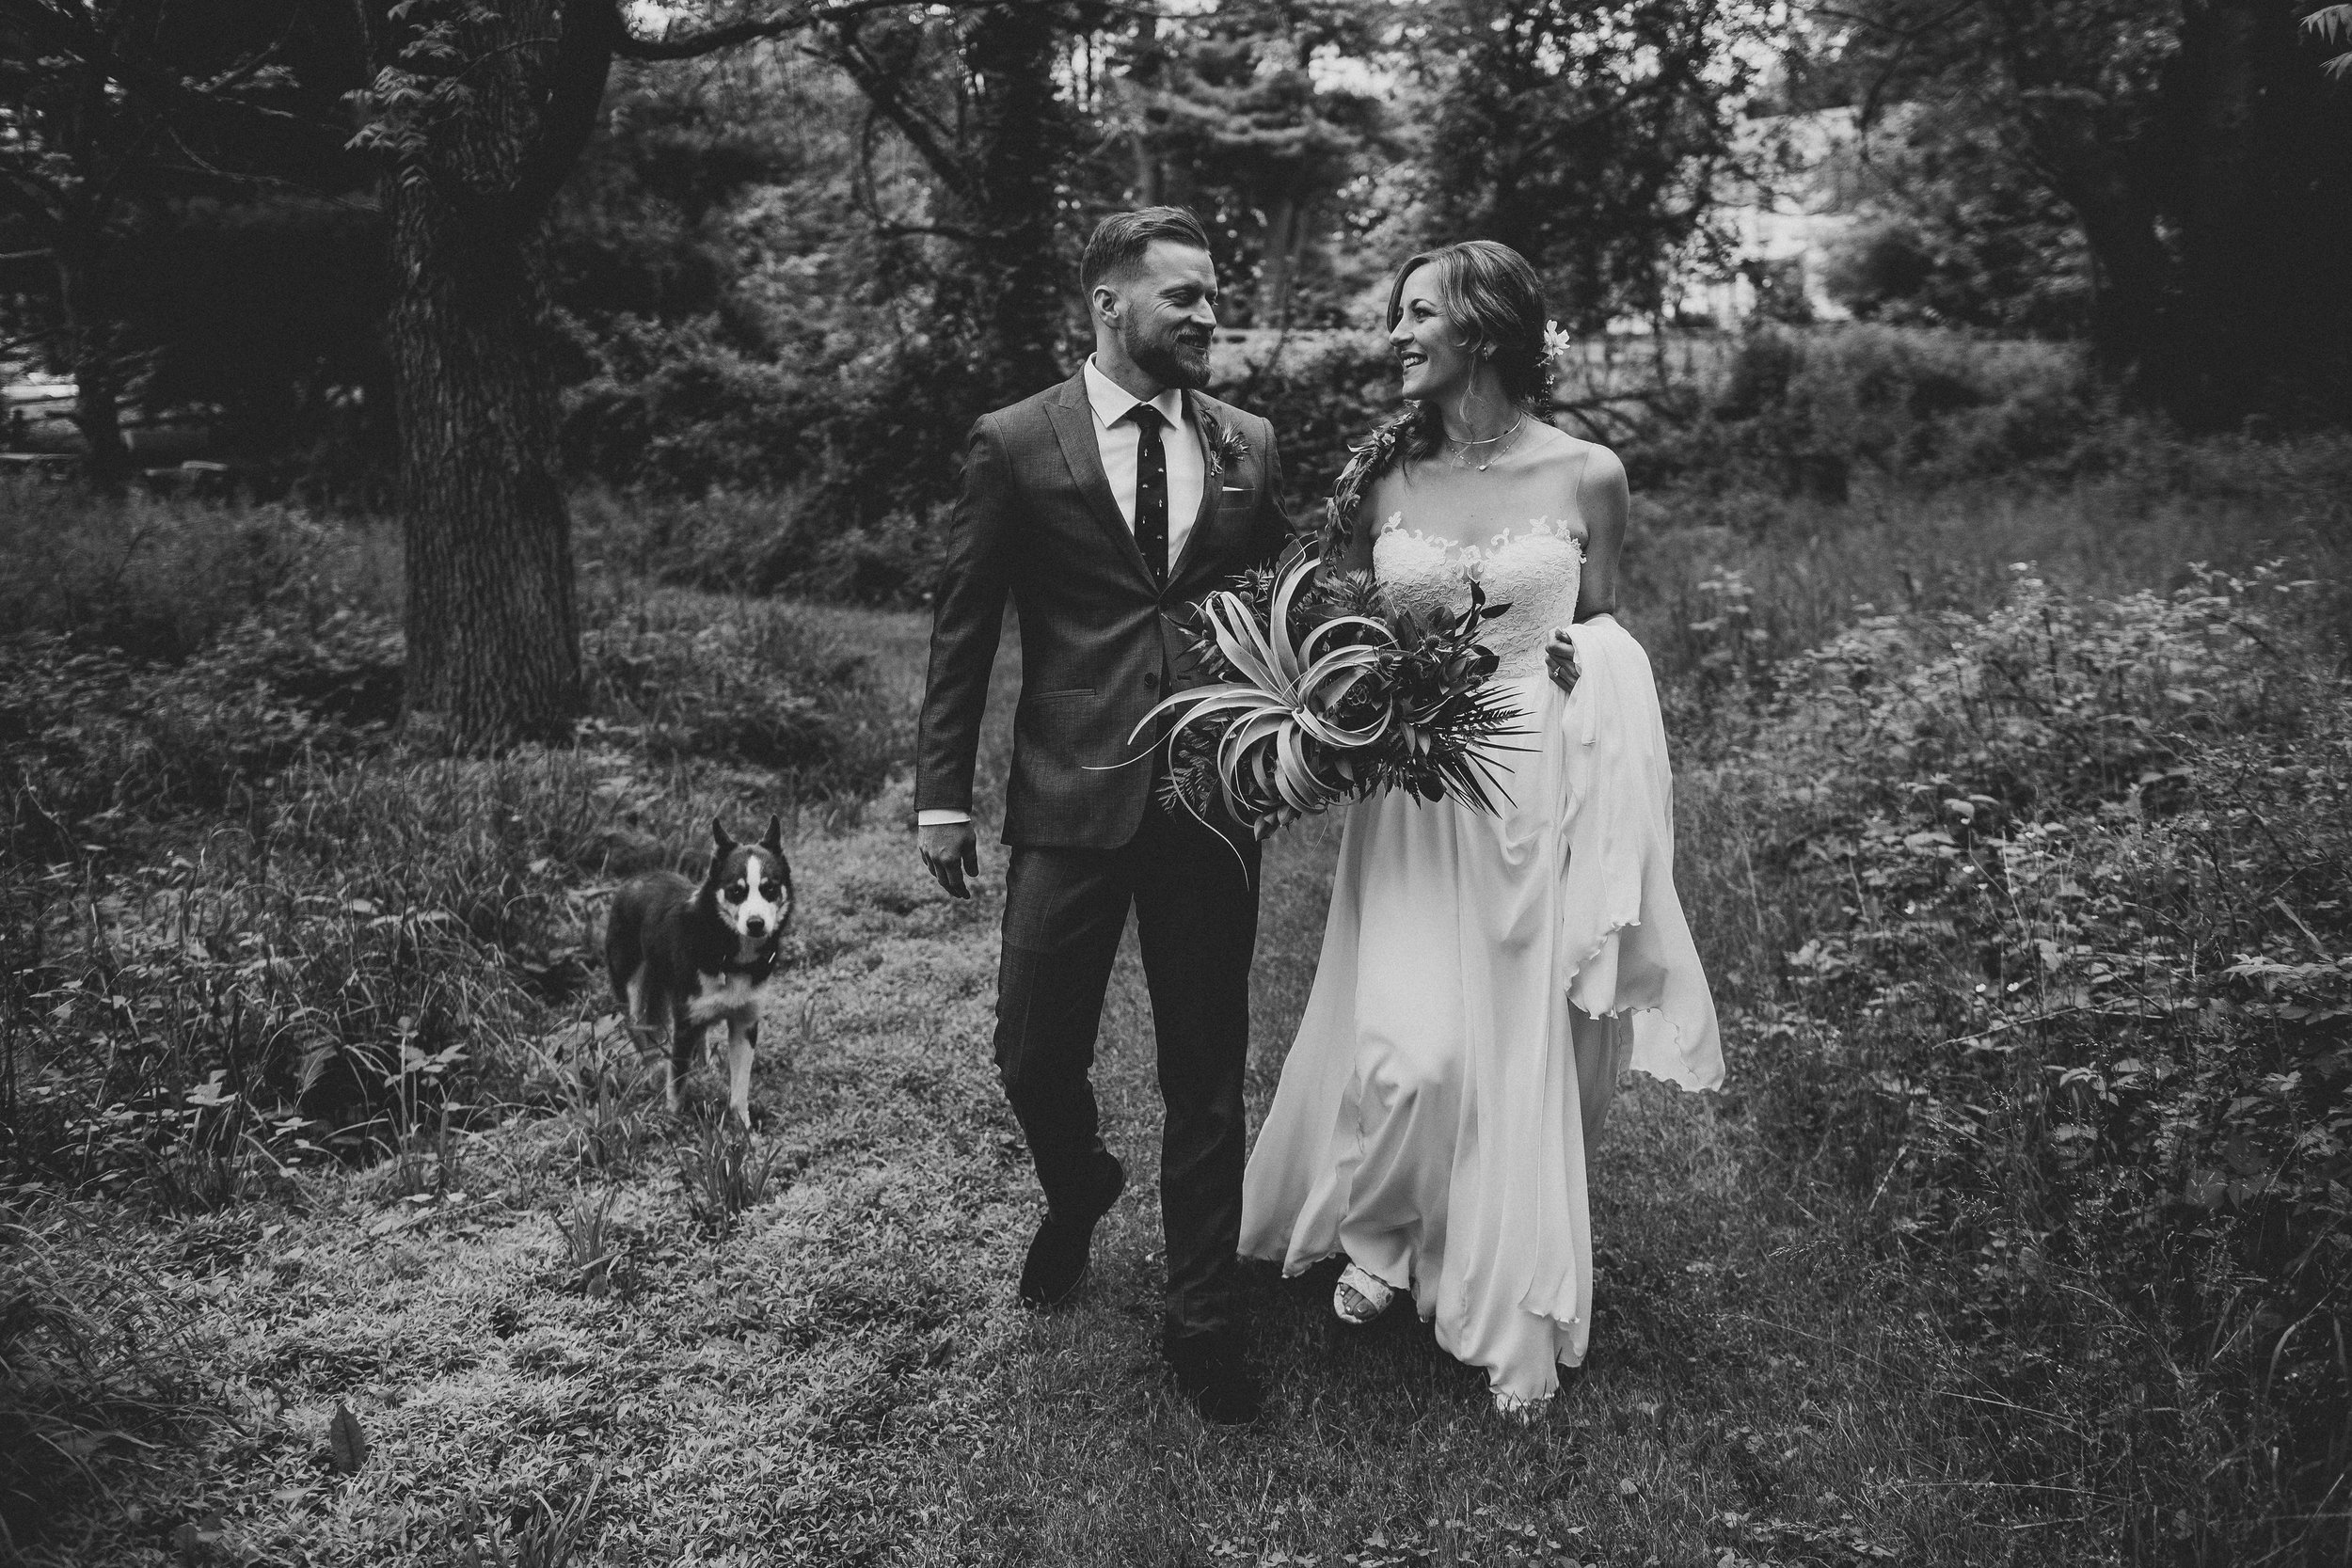 hudson-valley-farm-weddings-pioneer-farm-weddings-warwick-ny-newlyweds-walking-on-trail-with-dog.jpg